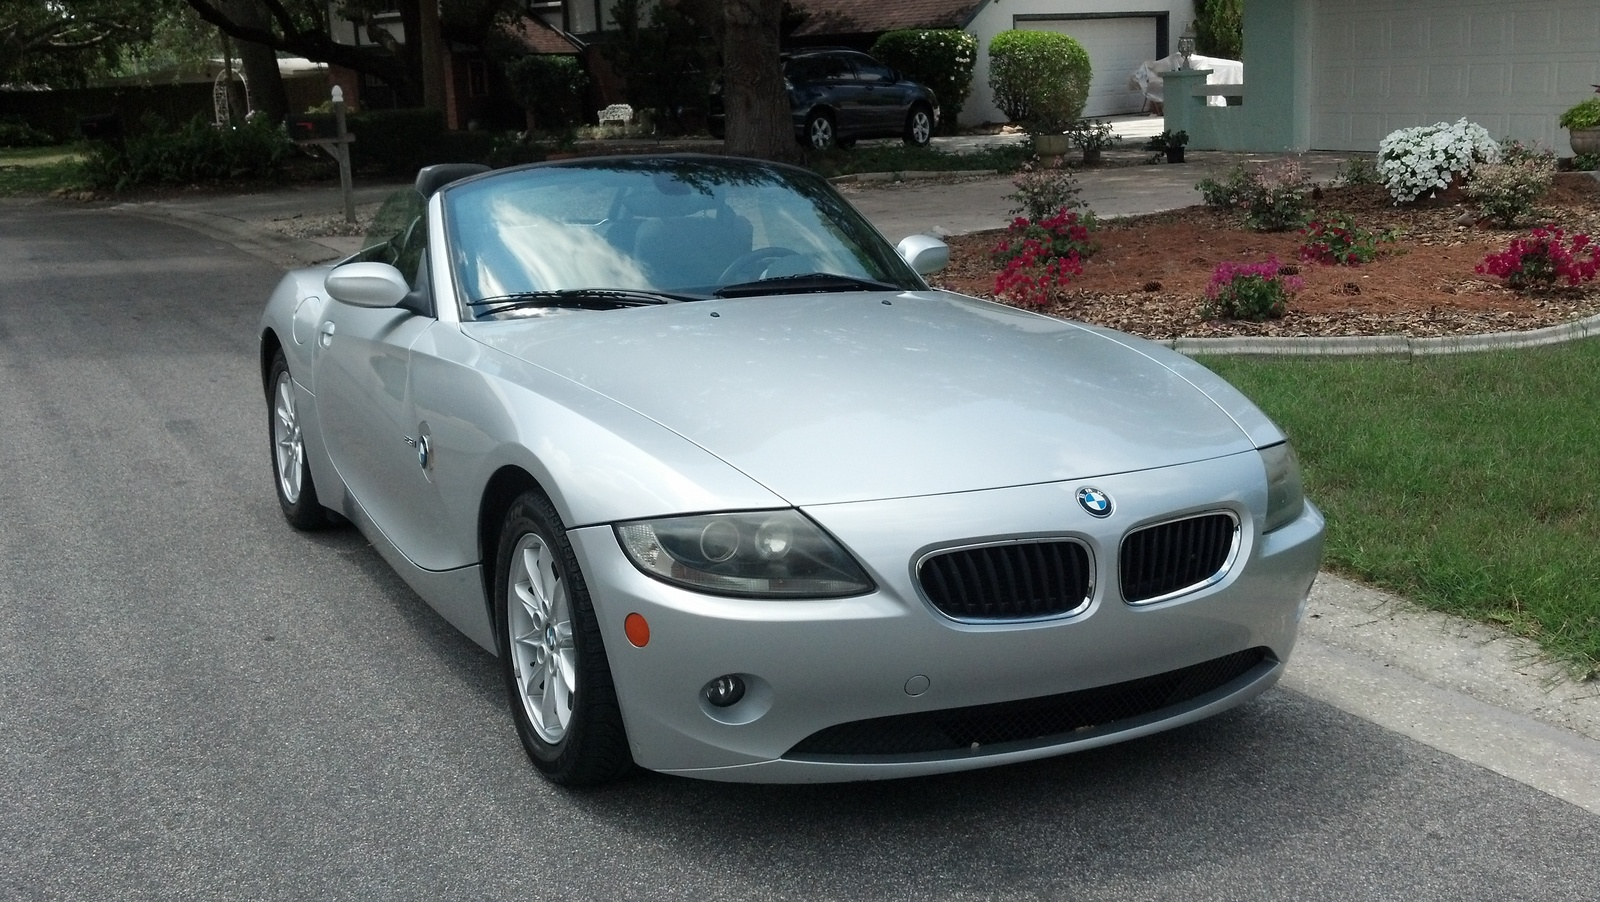 2005 Bmw Z4 Pictures Cargurus